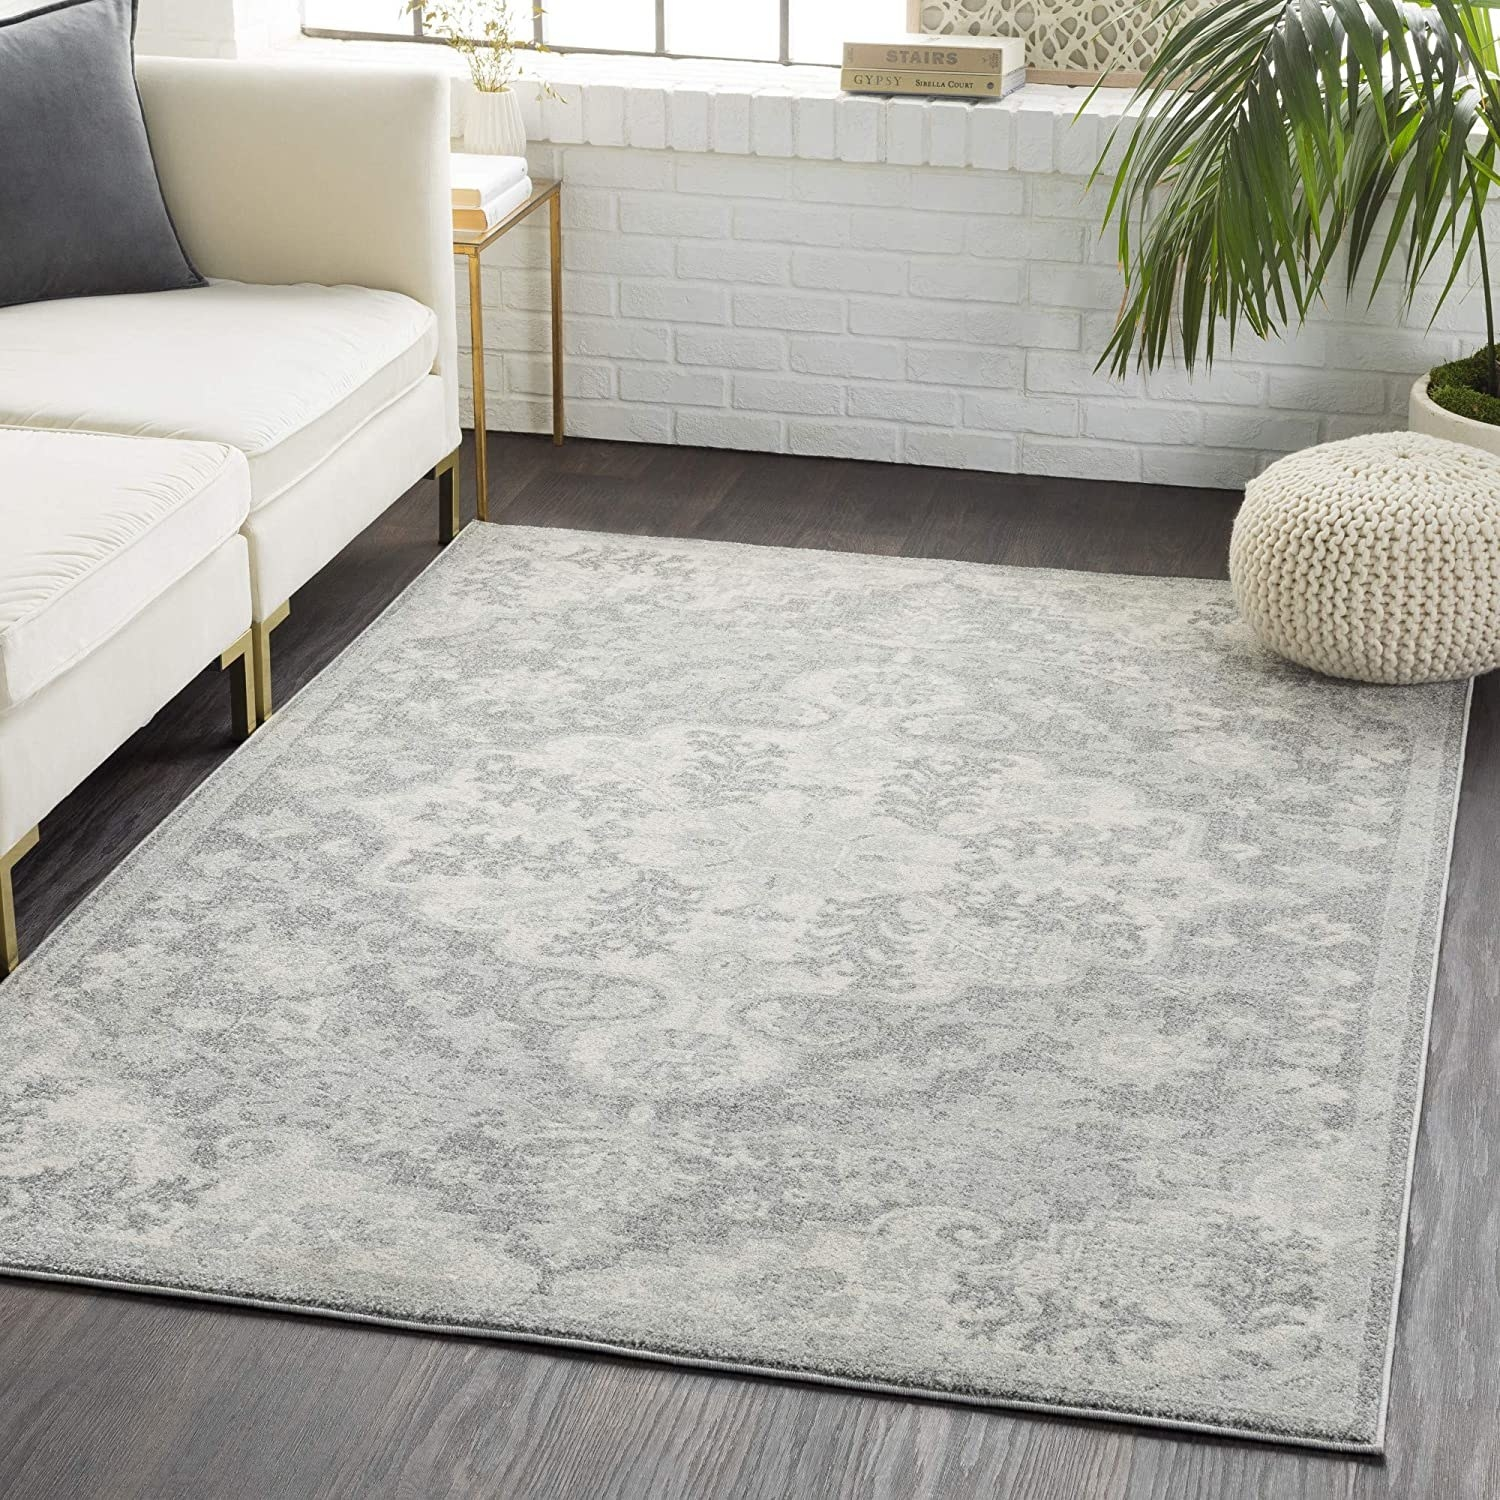 Charcoal colored area rug